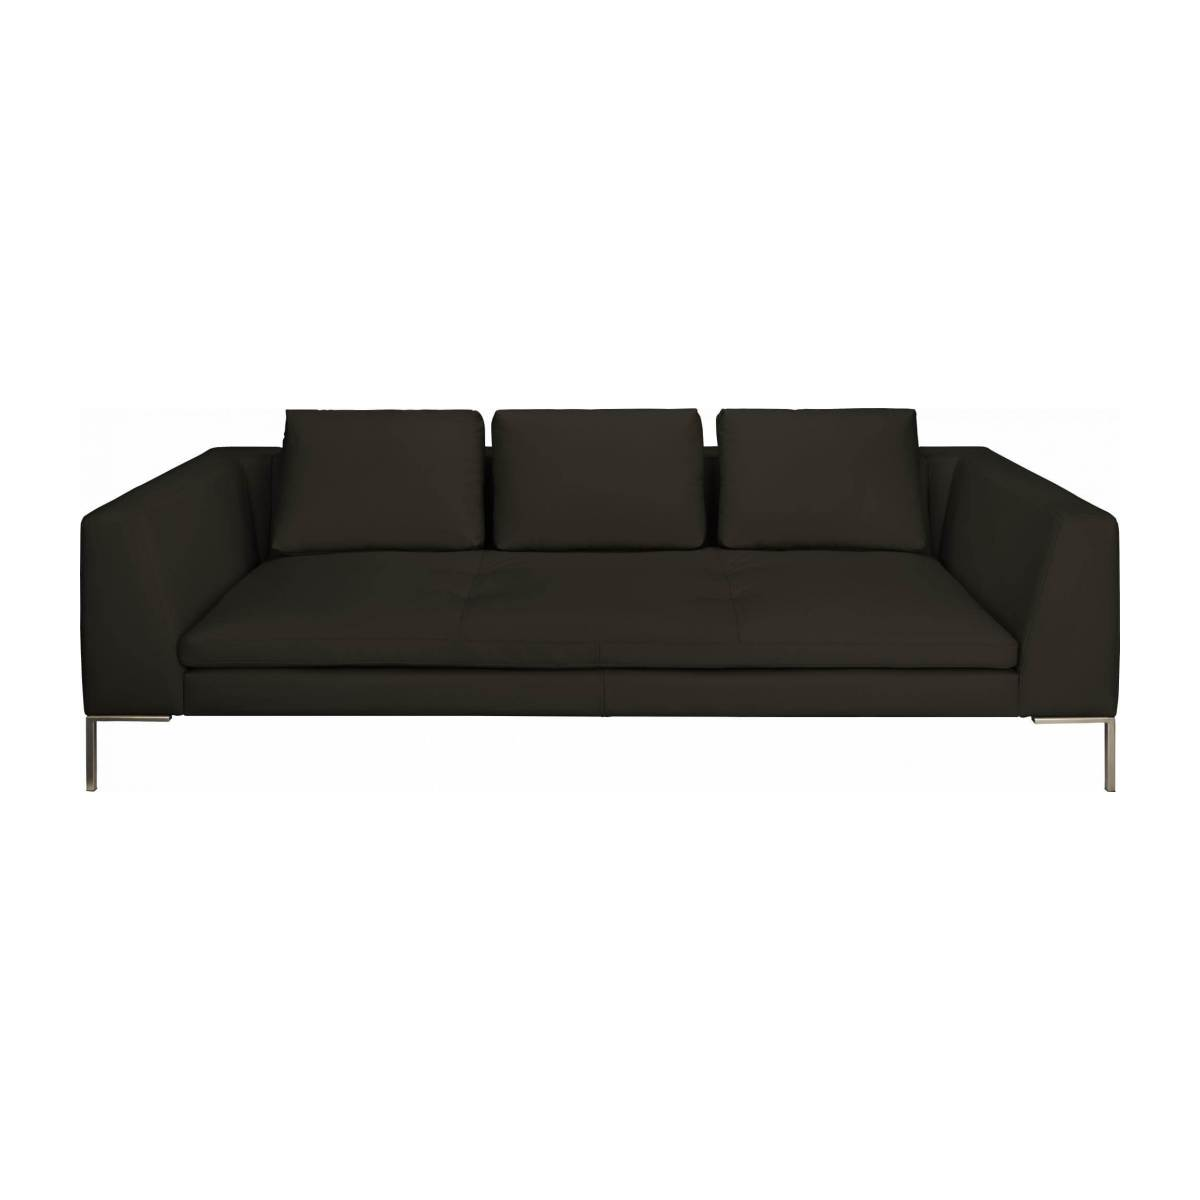 3 seater sofa in Eton veined leather, brown n°2